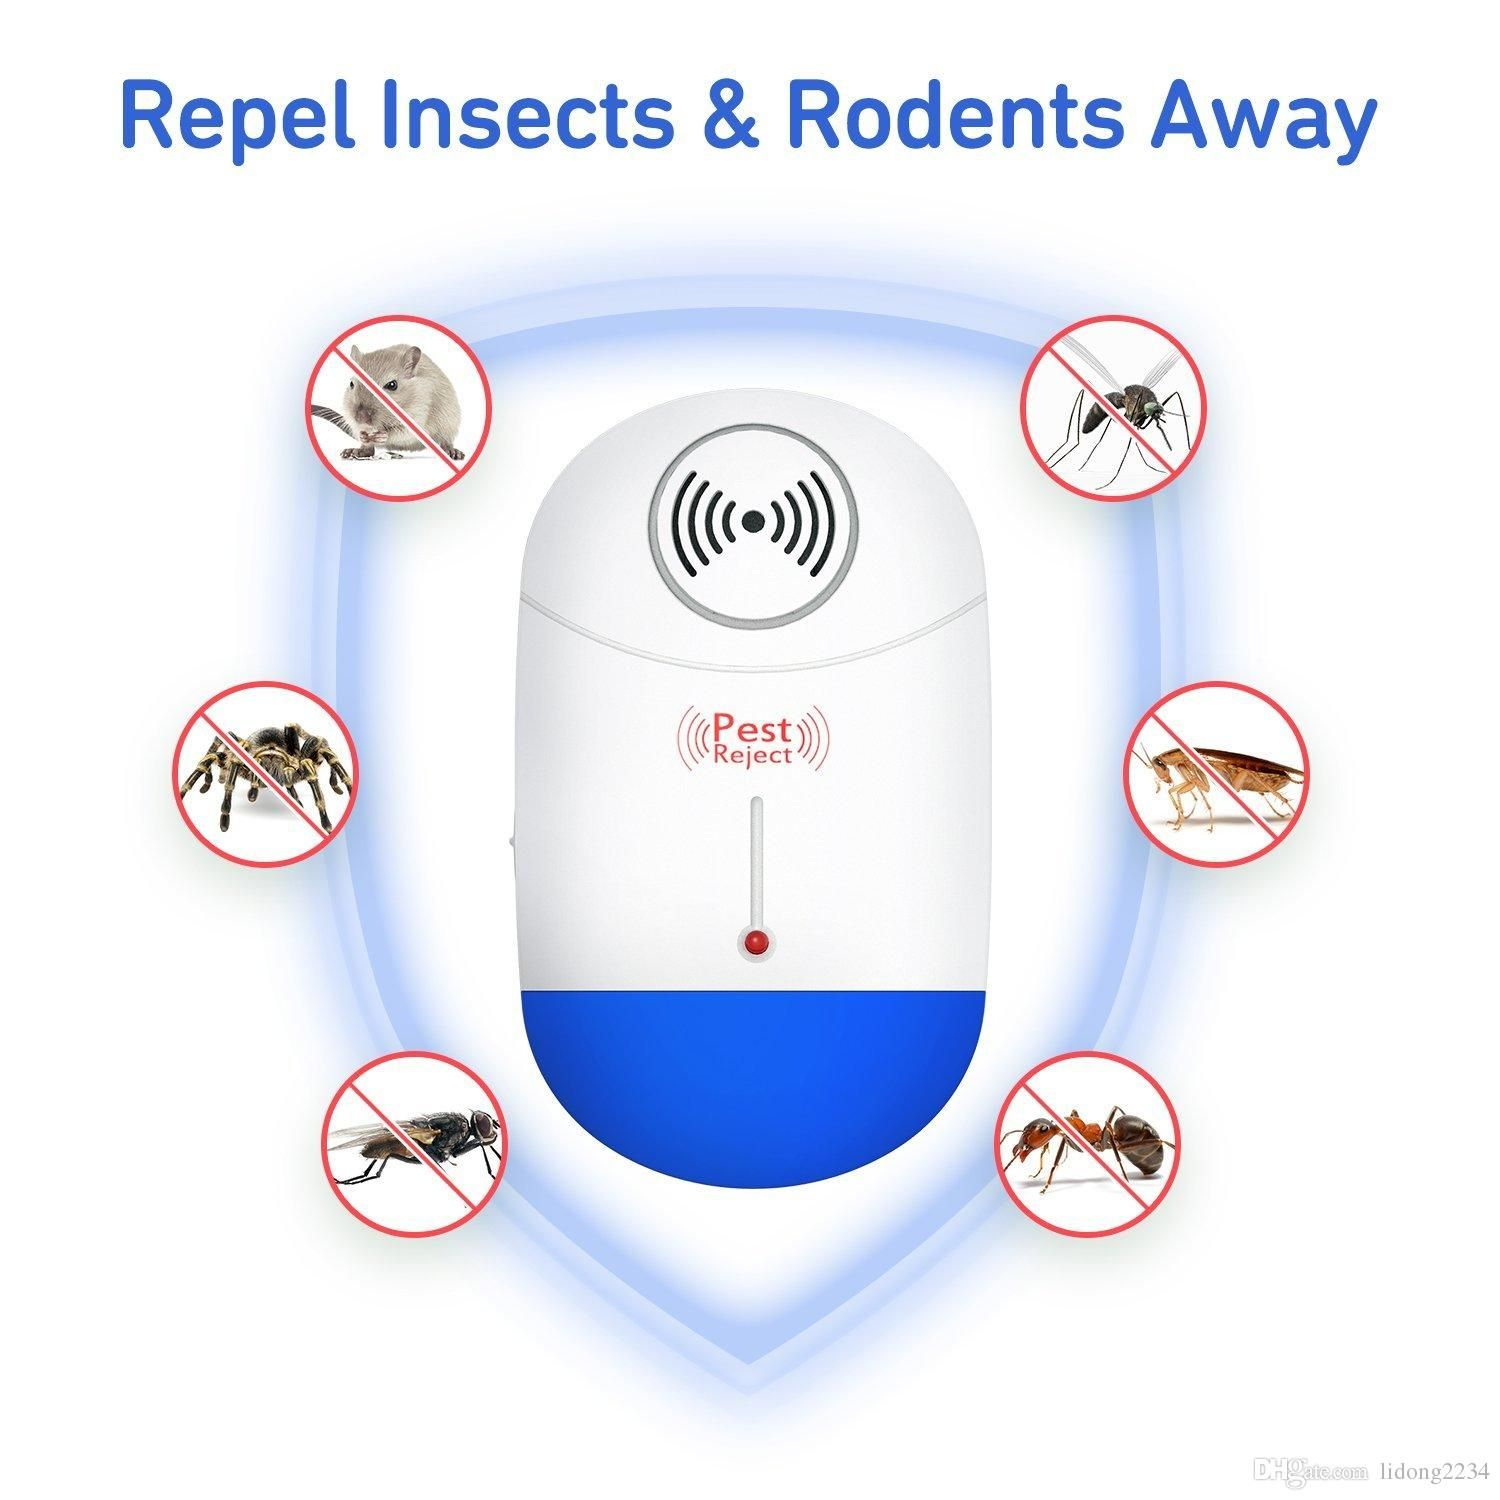 Ultrasonic Pest Repeller Reviews (Ultrasonic Pest Reject